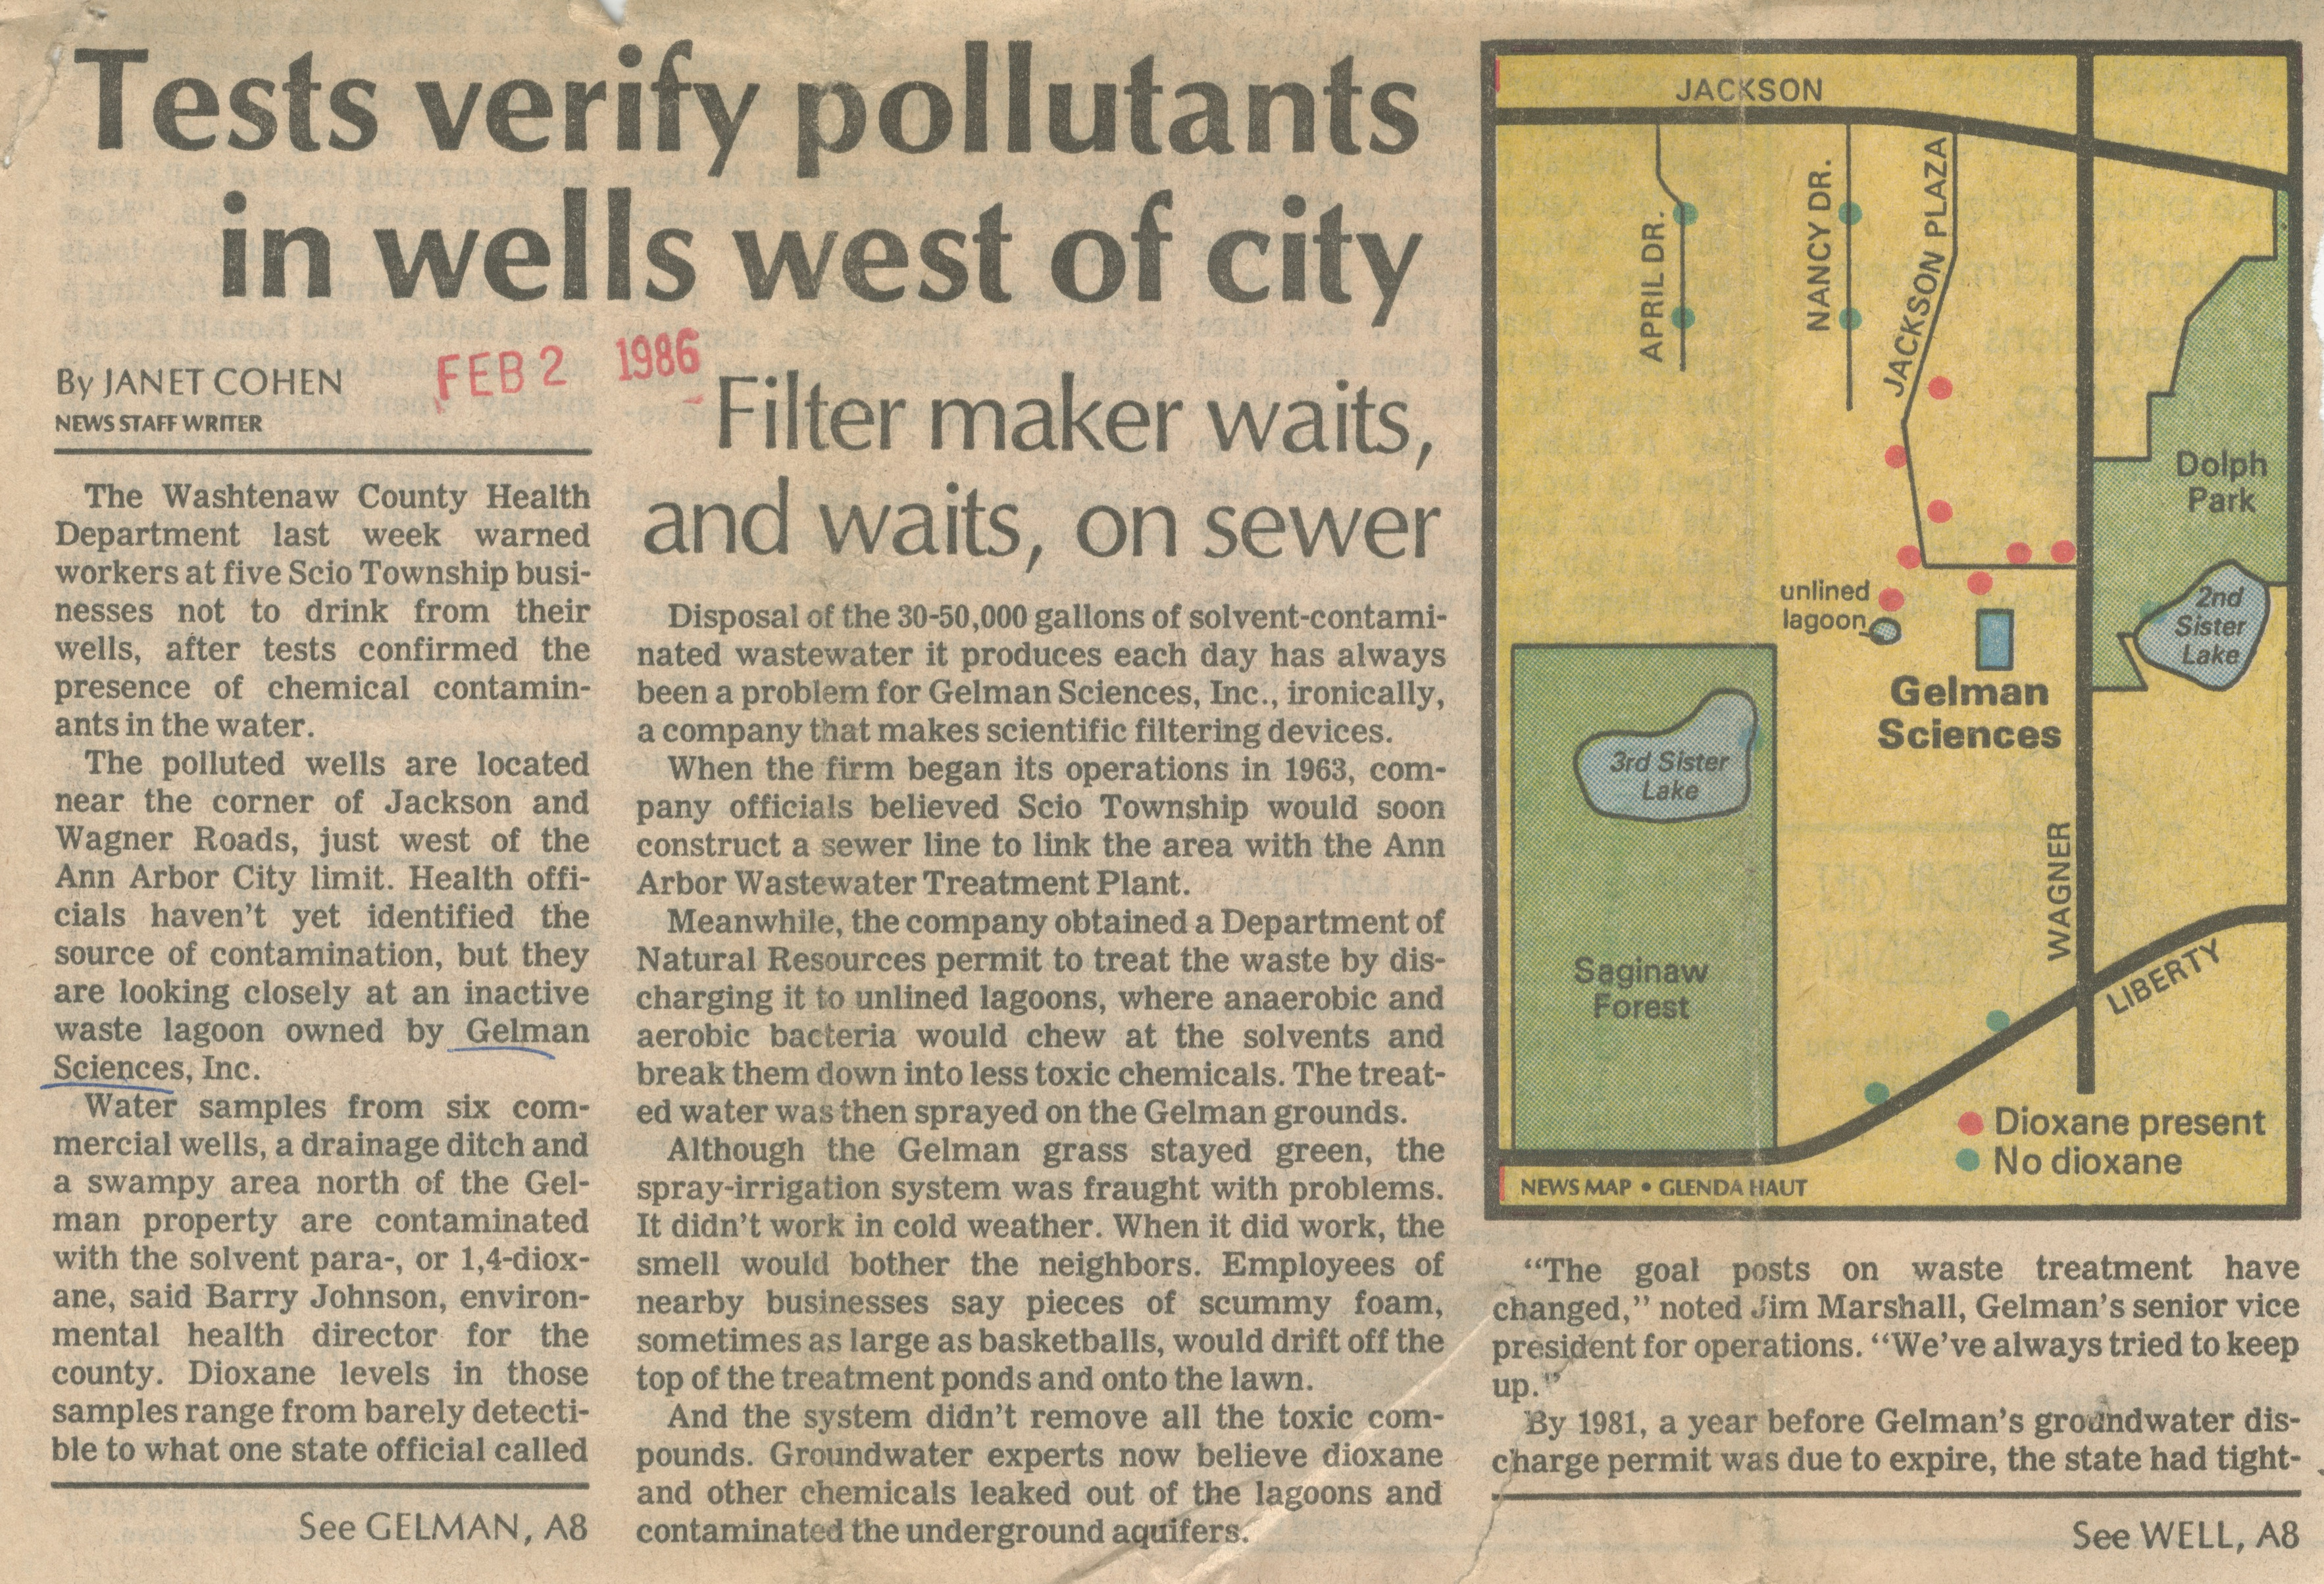 Tests Verify Pollutants In Wells West Of City image